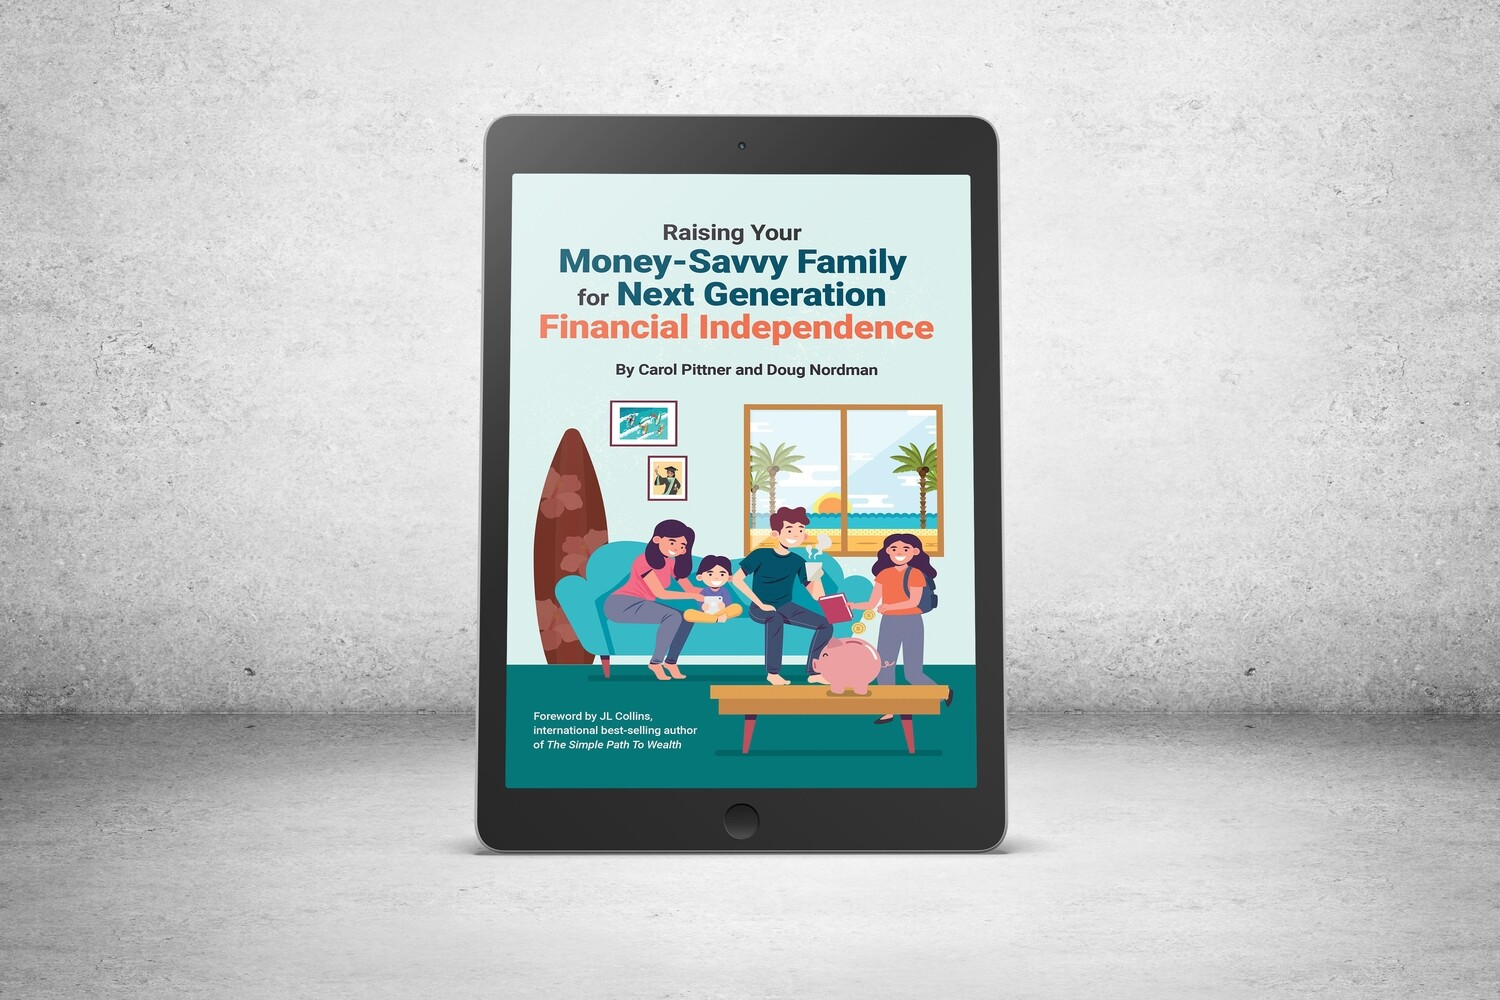 Raising Your Money-Savvy Family